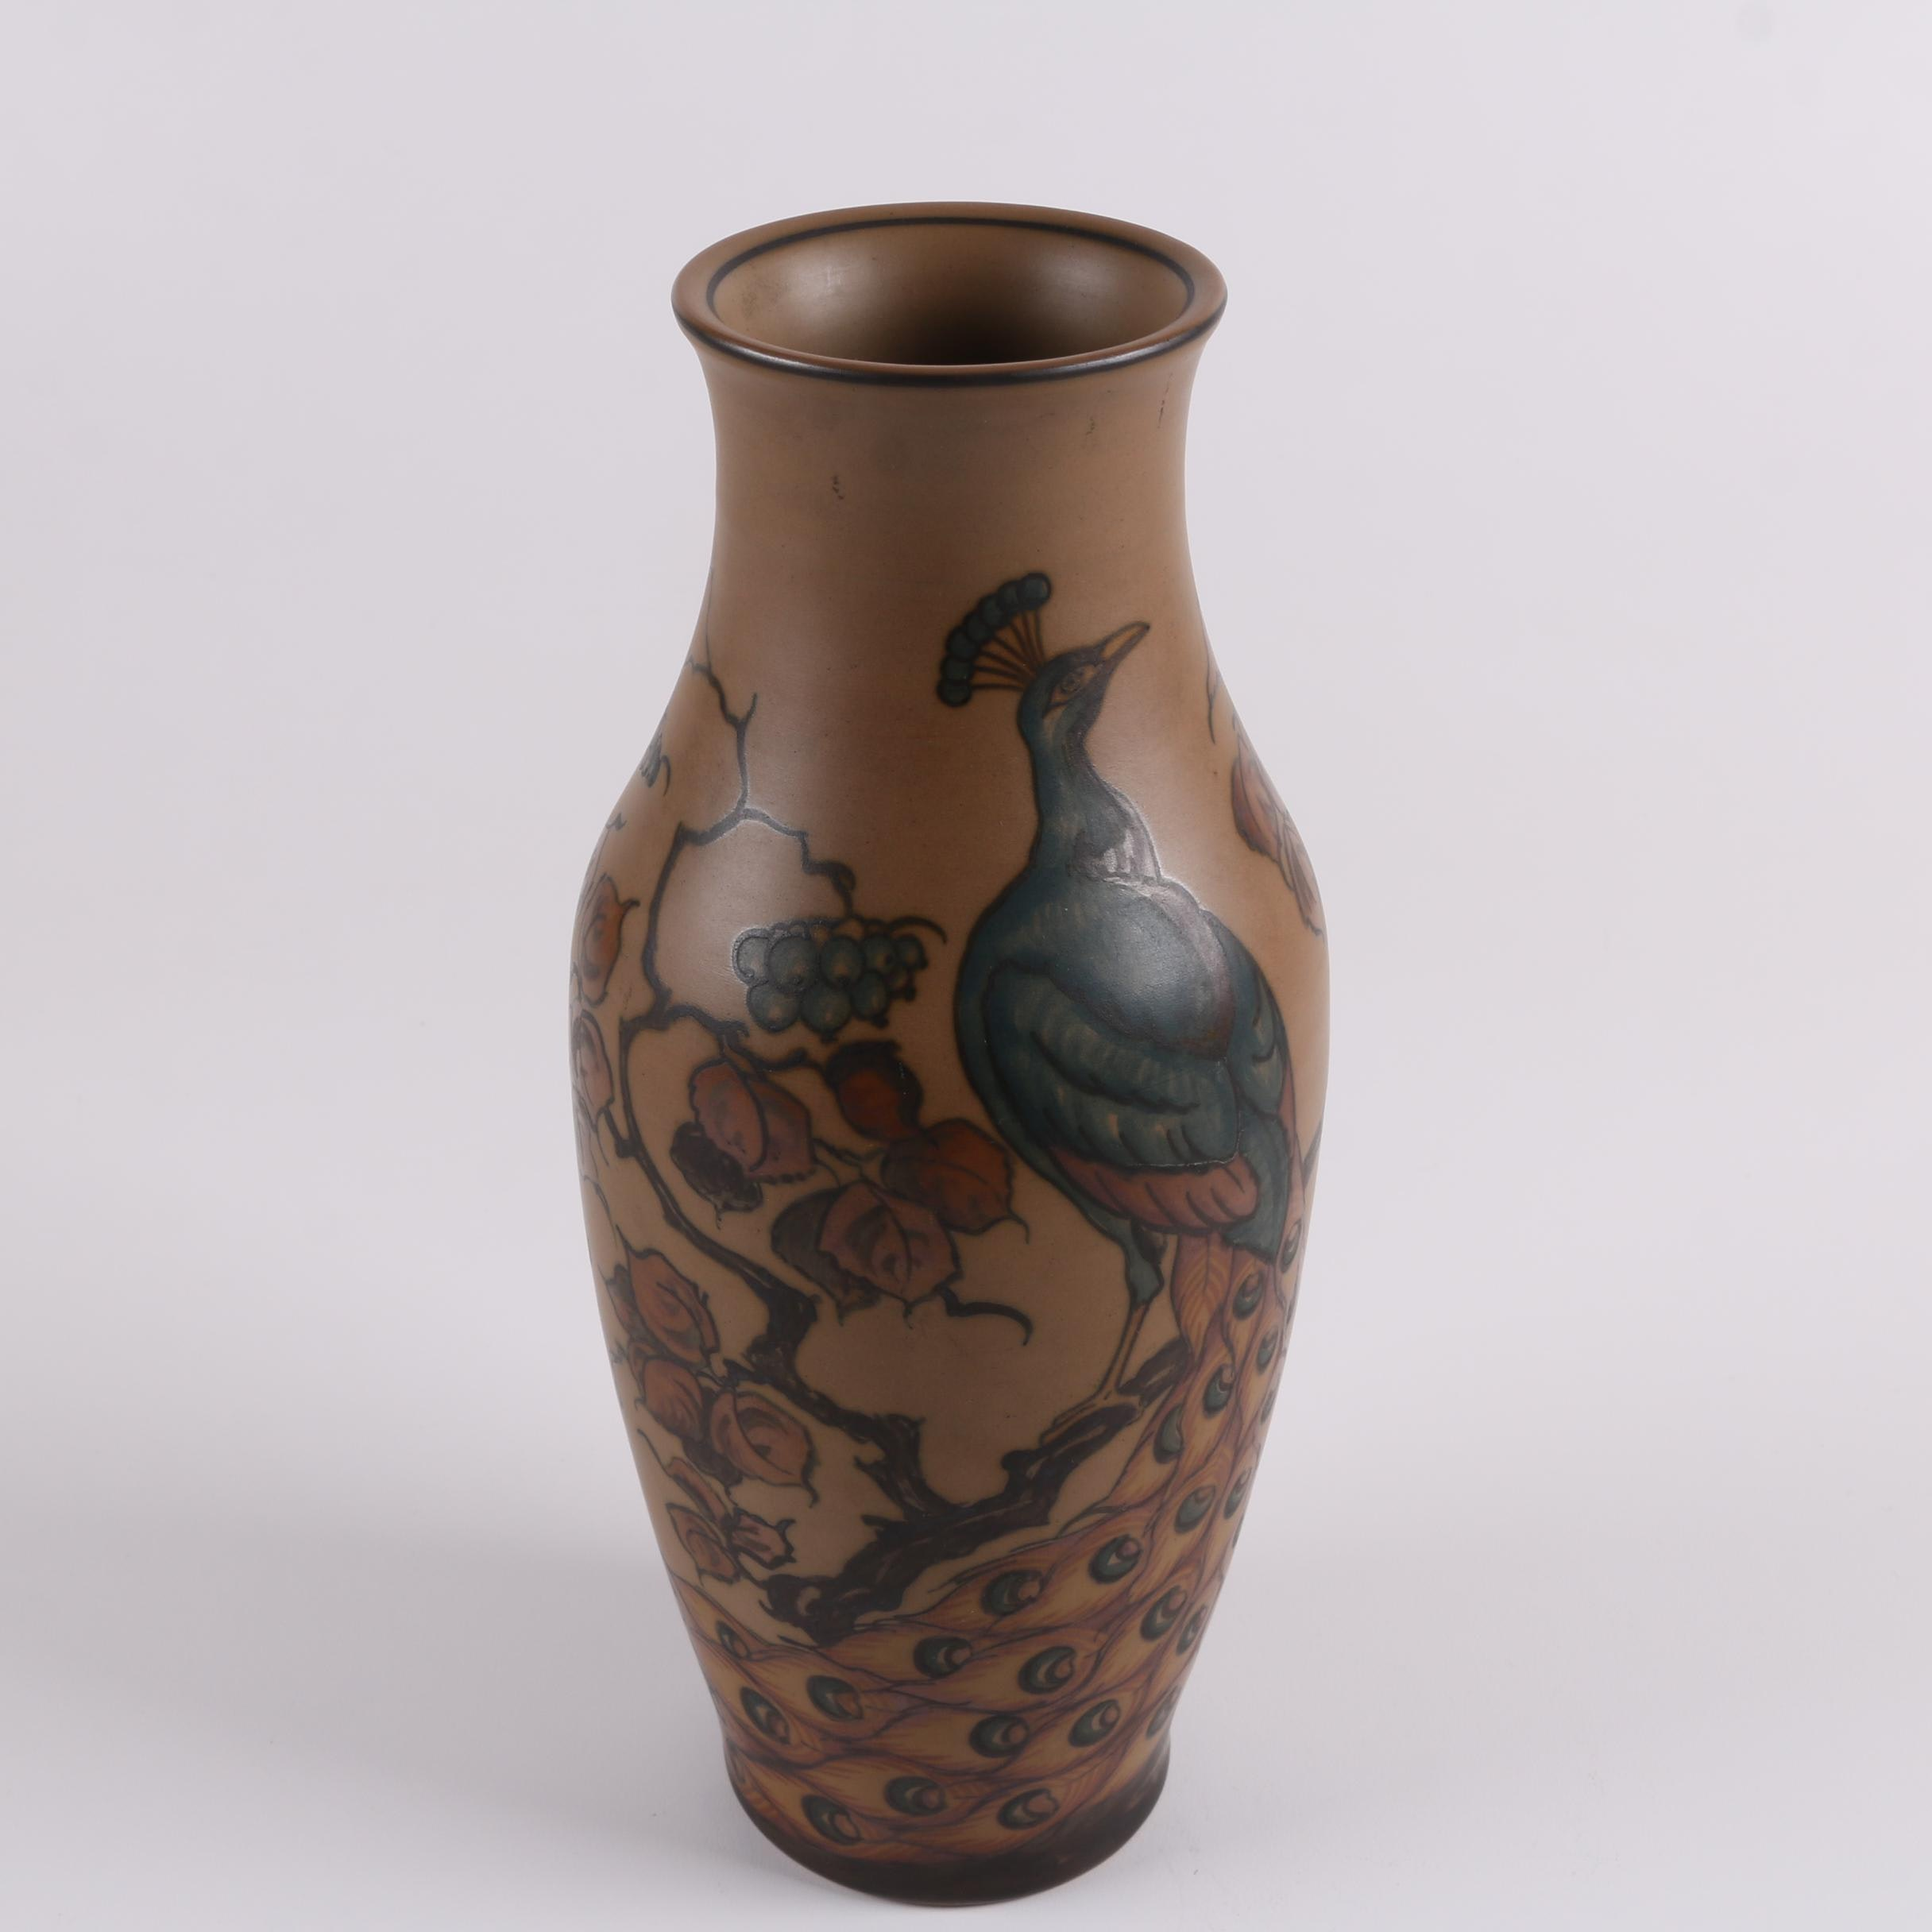 Hjorth Danish Stoneware Vase with Peacock and Foliate Pattern